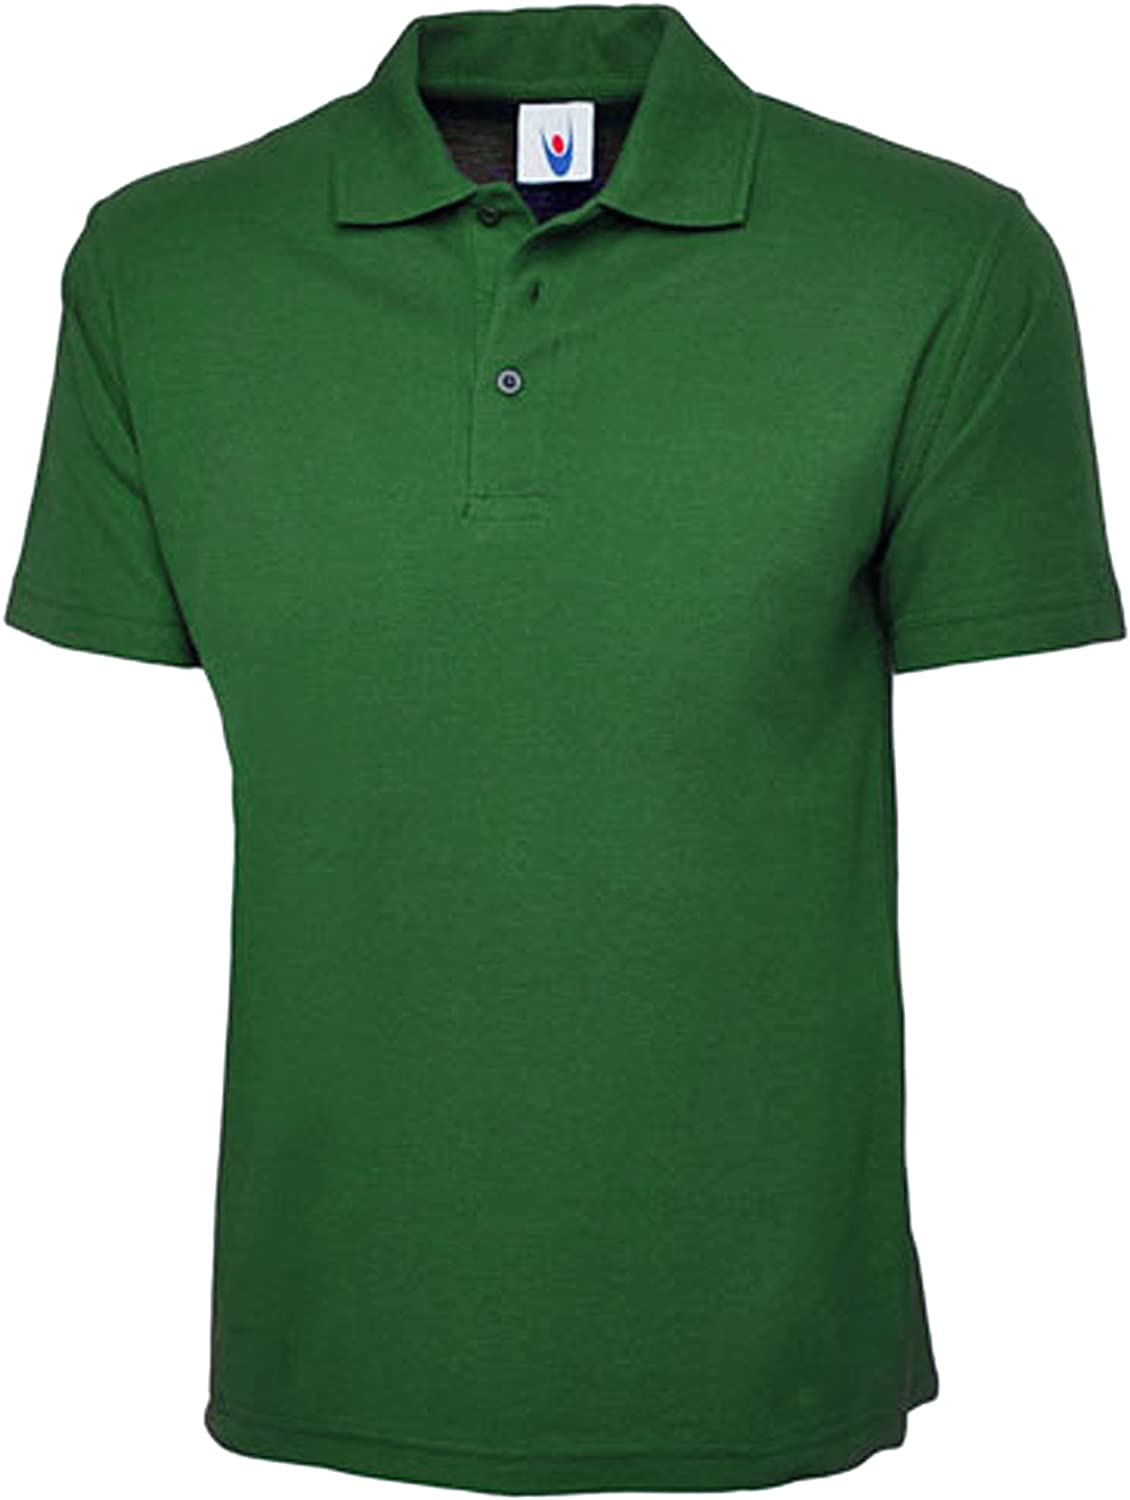 polo t shirts for ladies